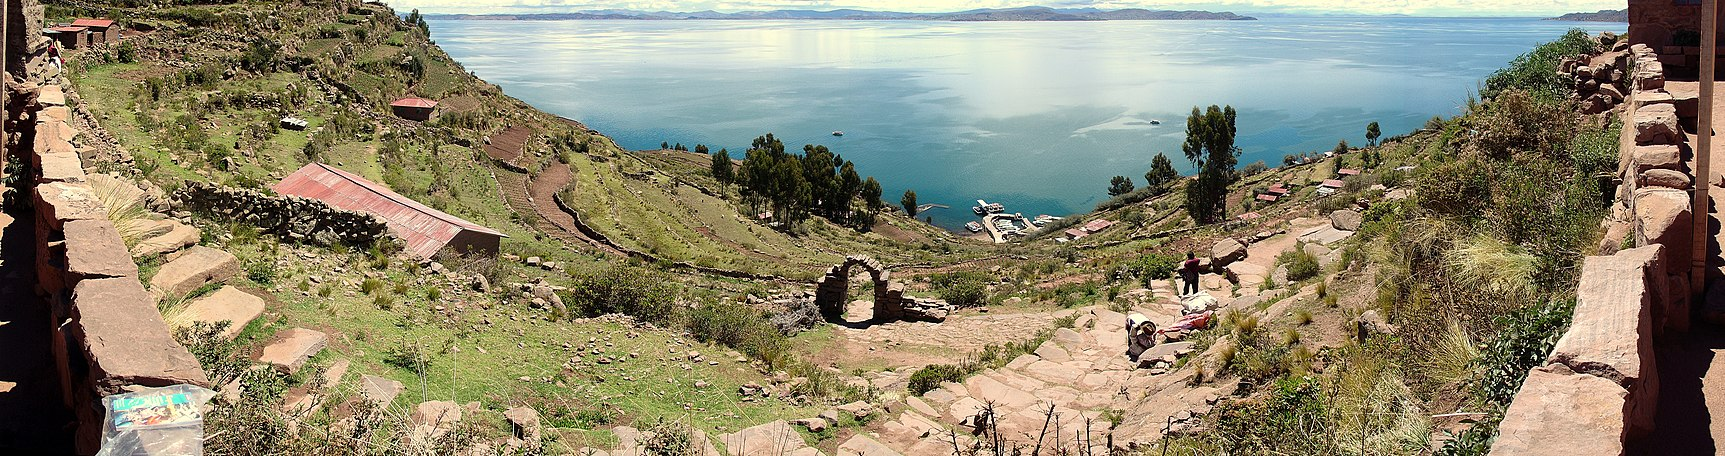 Panorama over Titicaca-søen